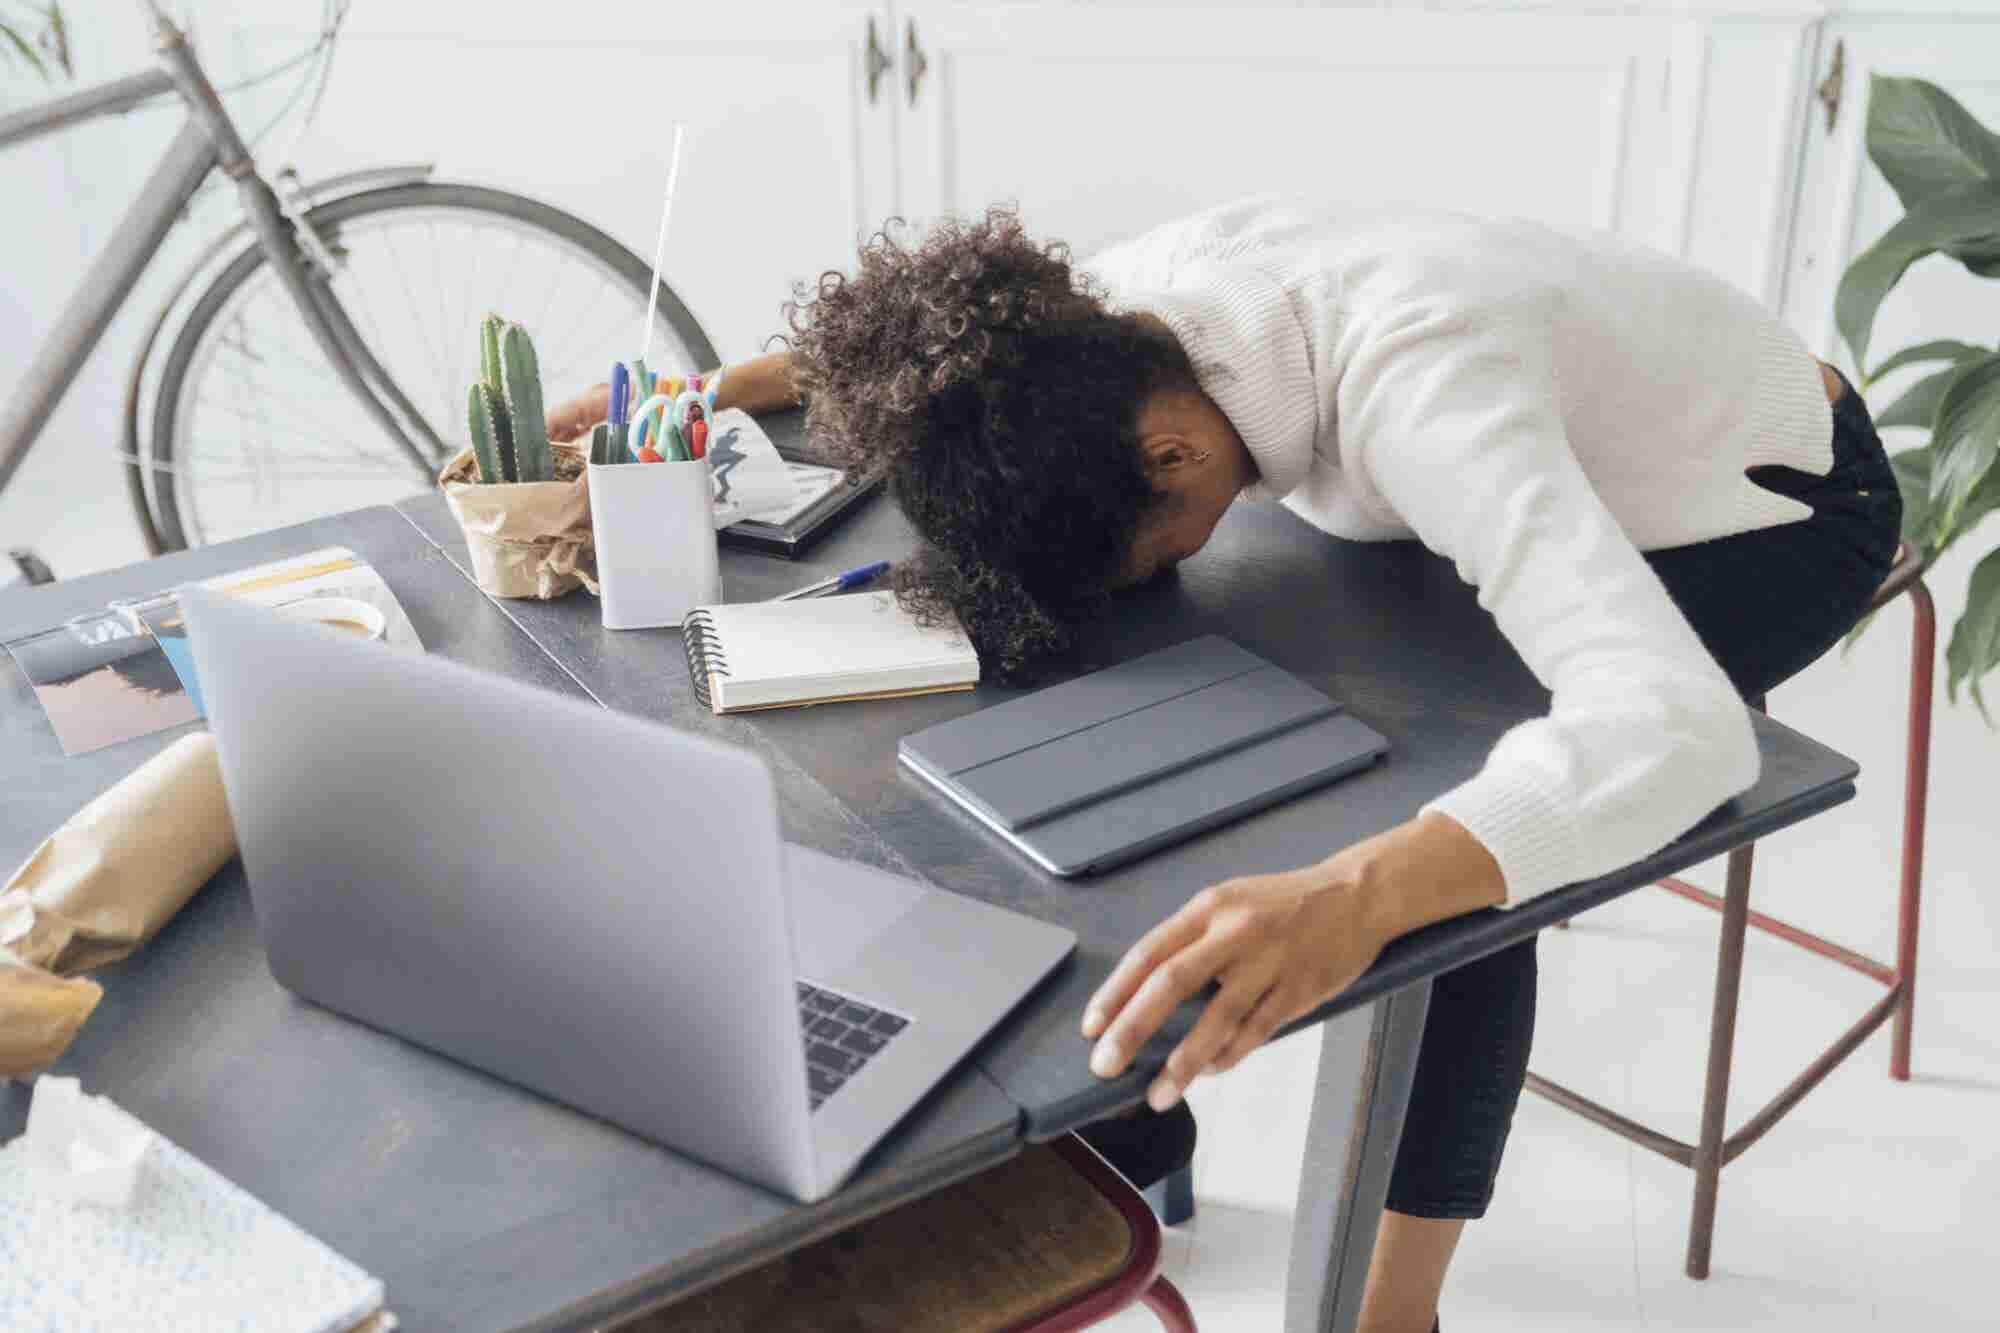 How to Prepare for an Unexpected, Unwanted and Unwelcome Business Setback